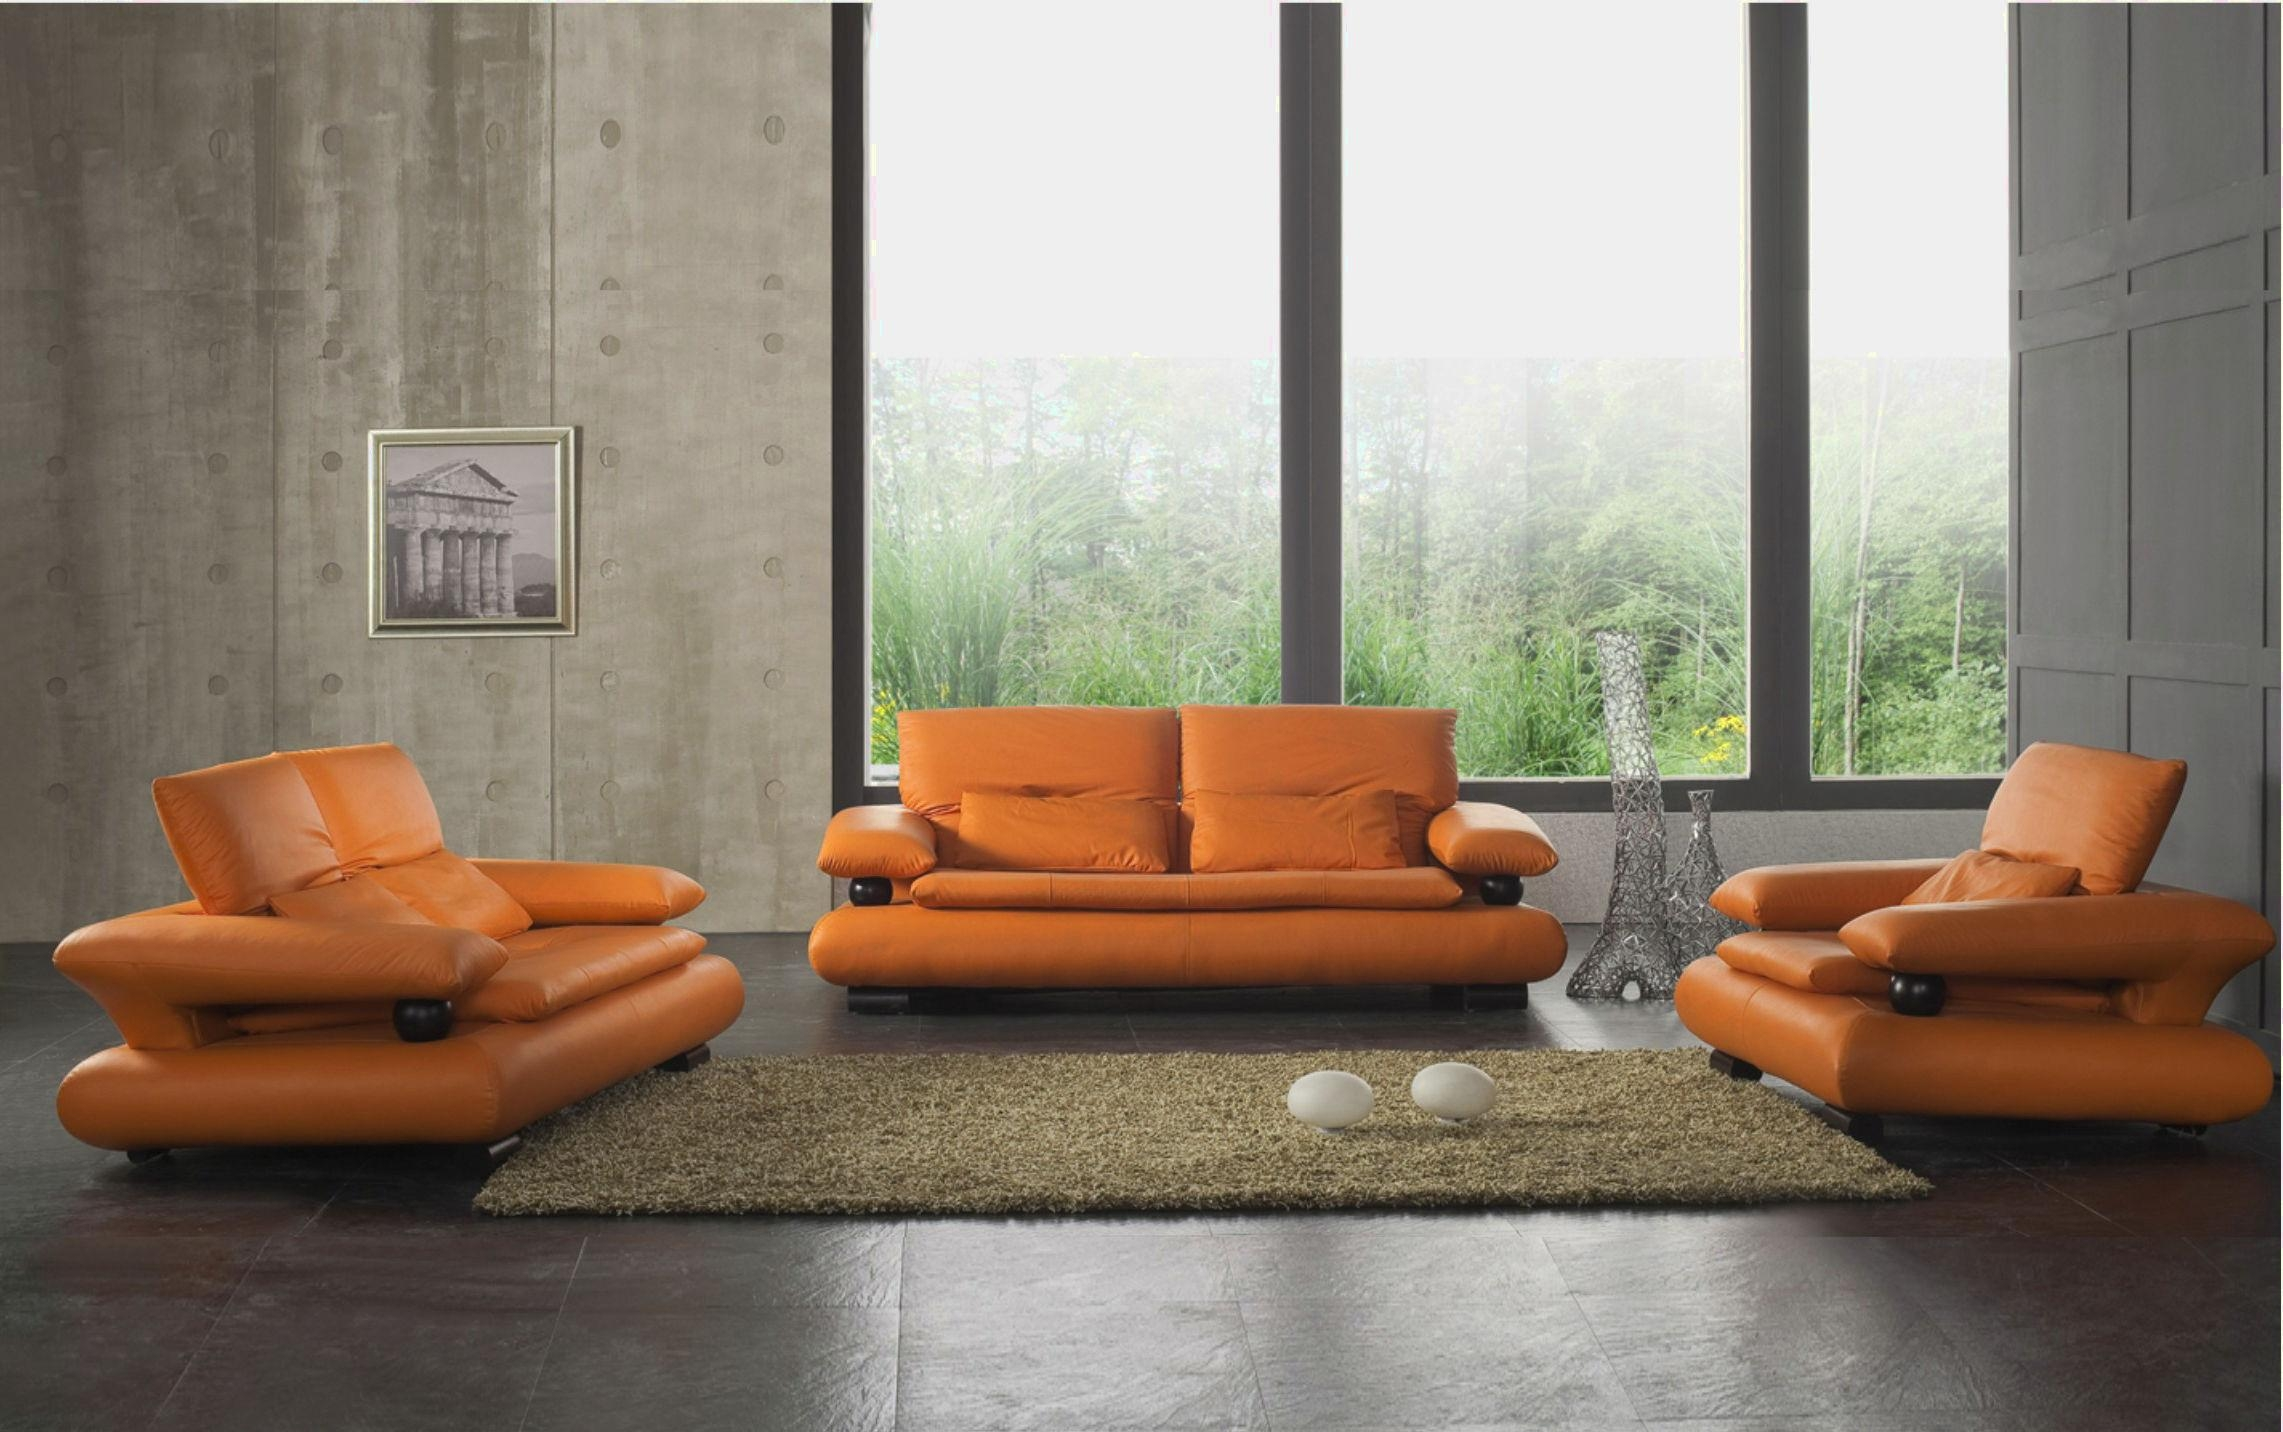 Stunning Orange Living Room Furniture Ideas – Home Design Ideas With Regard To Orange Modern Sofas (Image 19 of 20)